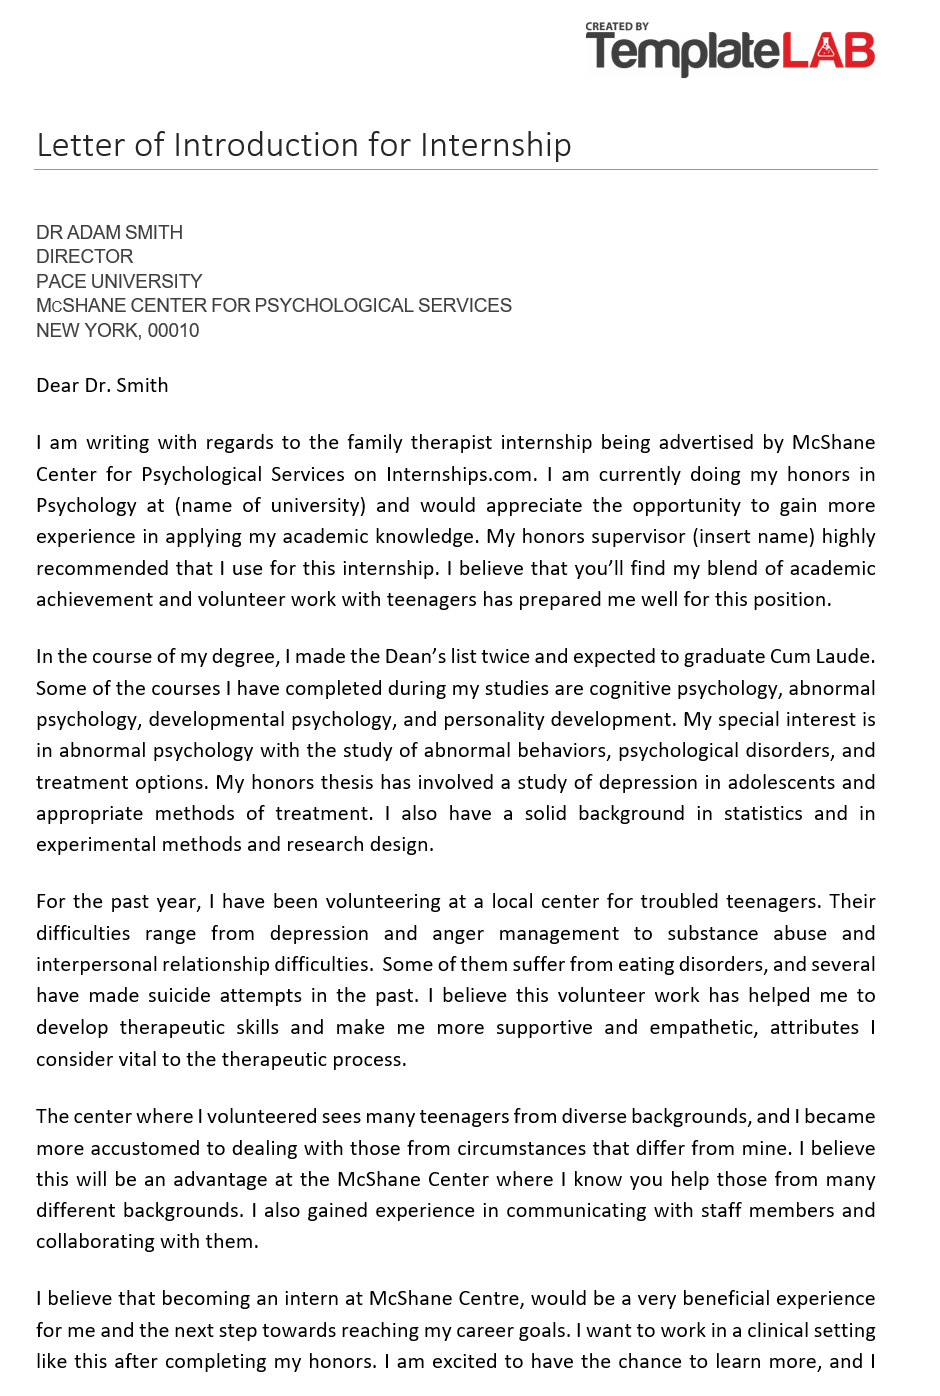 Free Letter of Introduction for Internship 2